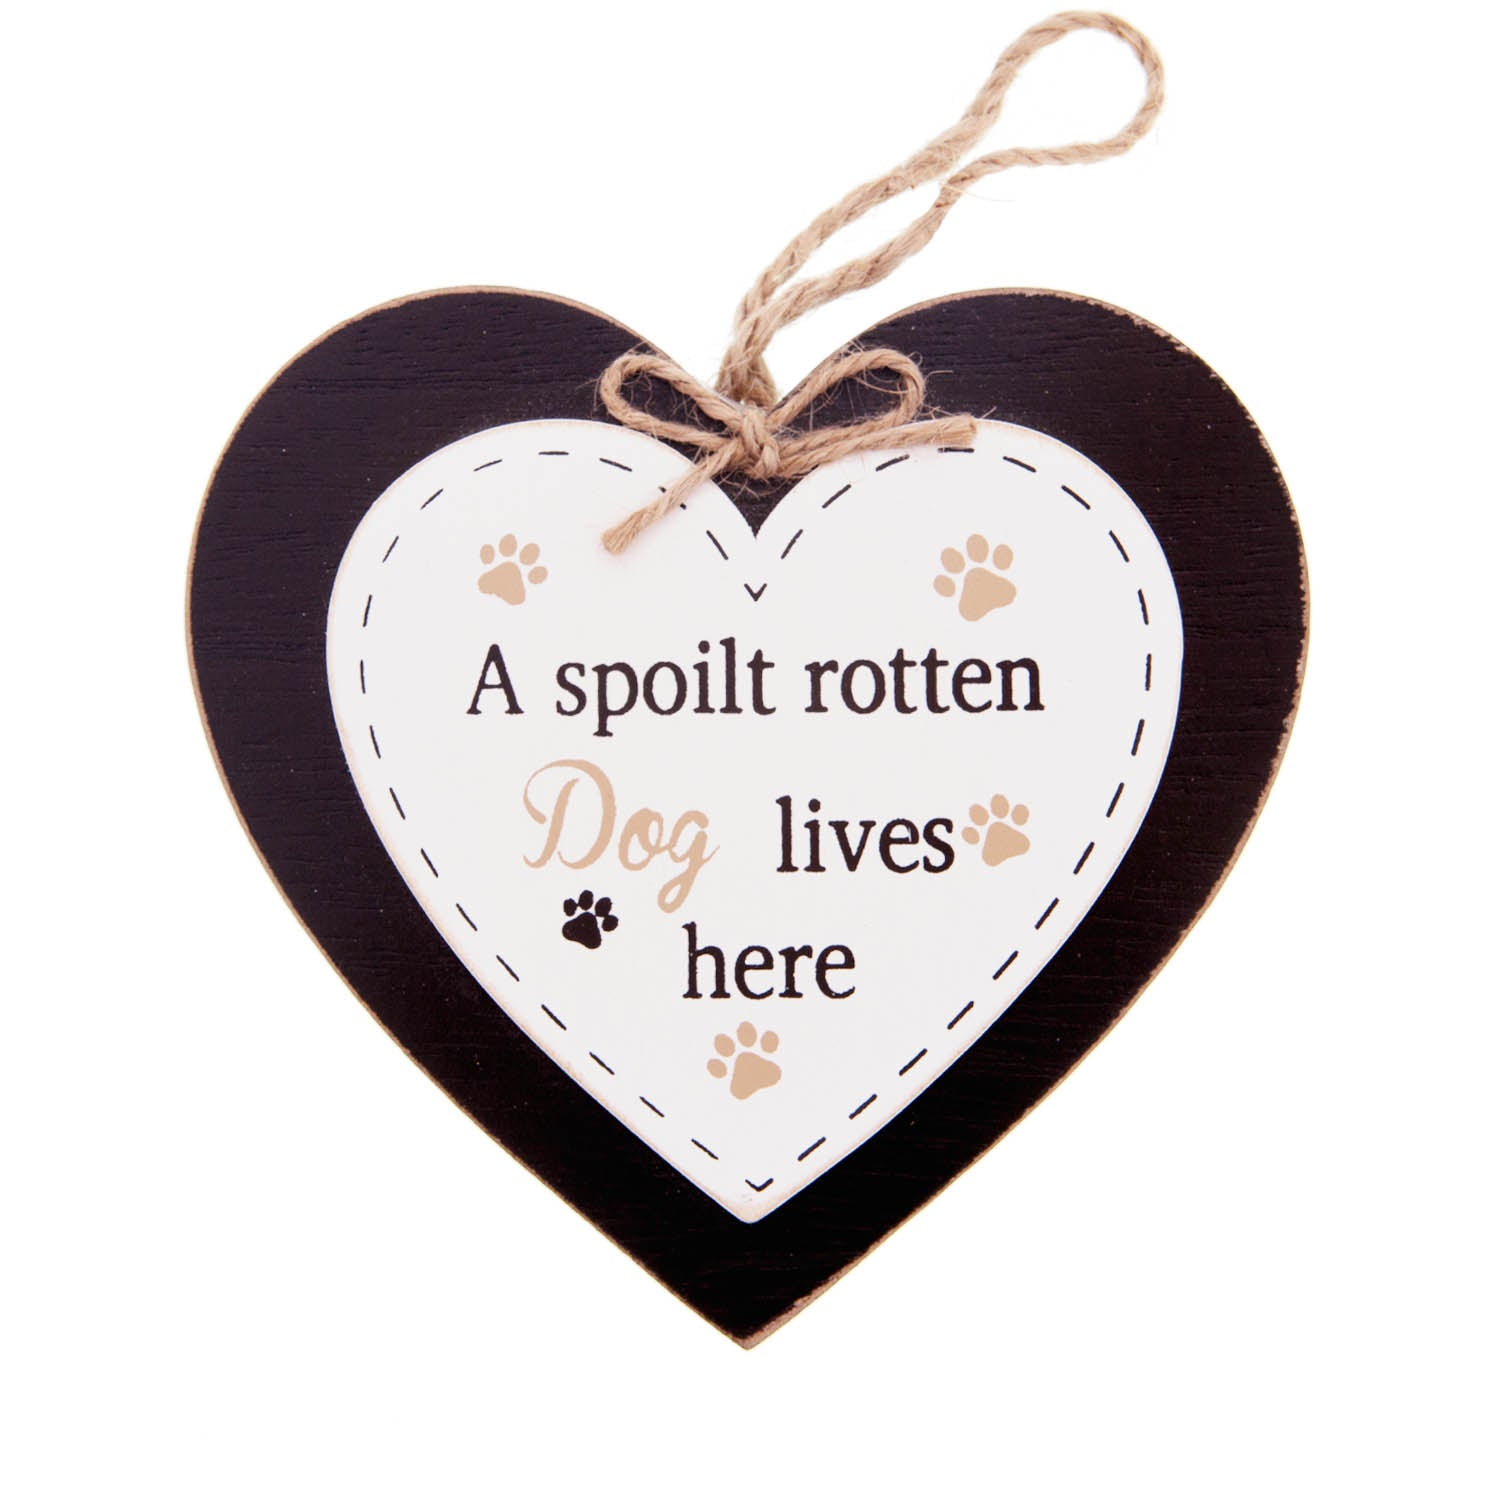 DogKrazyGifts - Doggie Pals Hanging Heart - A spoilt rotten Dog lives here - part of the range of Dog Themed Signs available from Dog Krazy Gifts